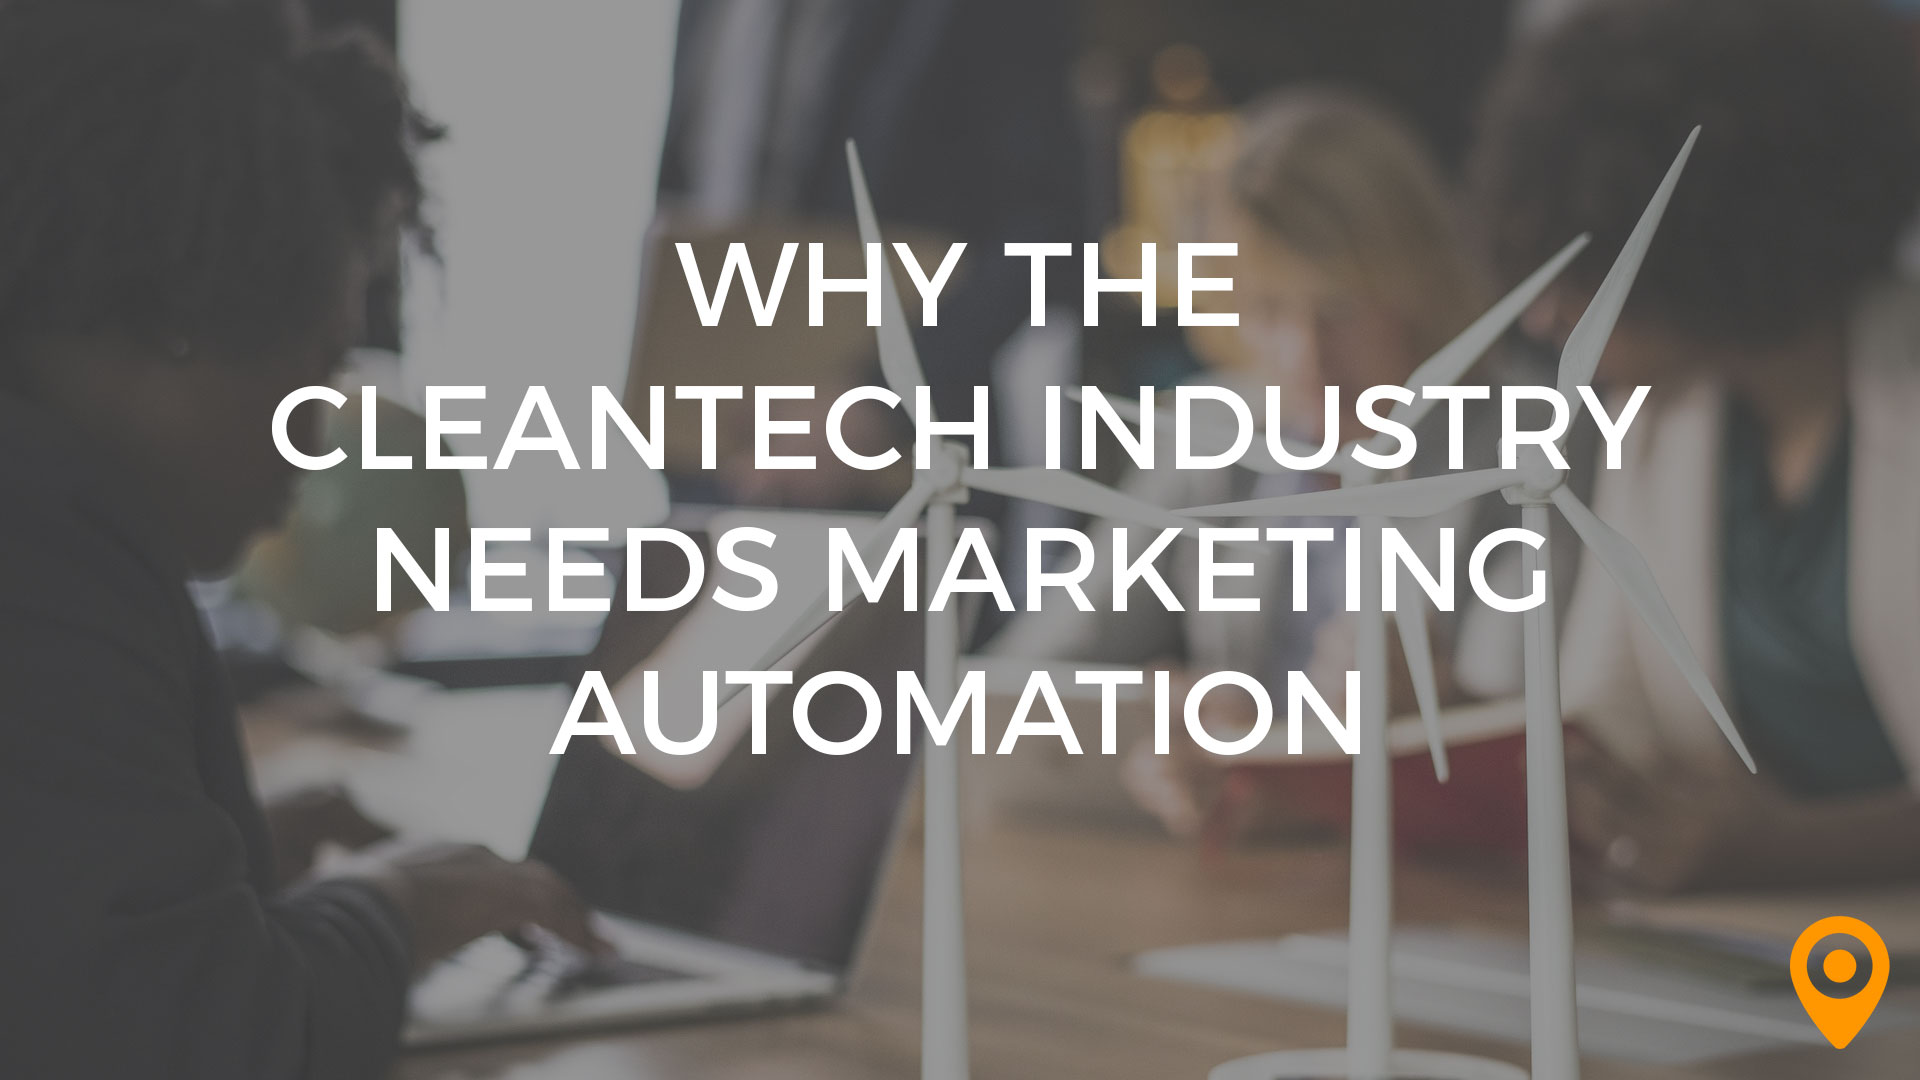 Why the Cleantech Industry Needs Marketing Automation